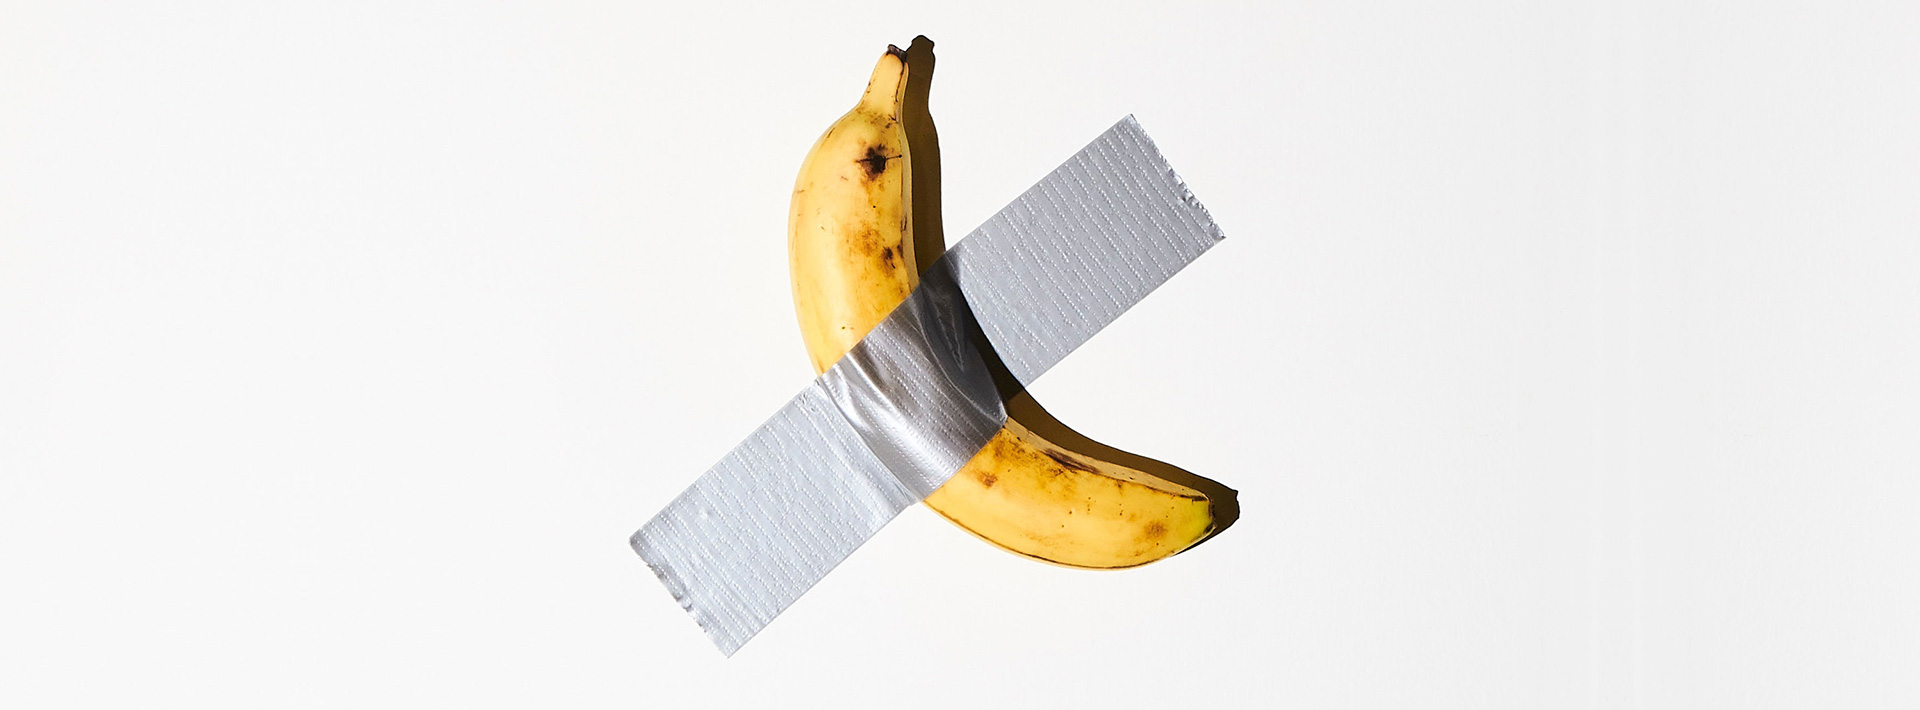 So, this duct-taped banana at the wall